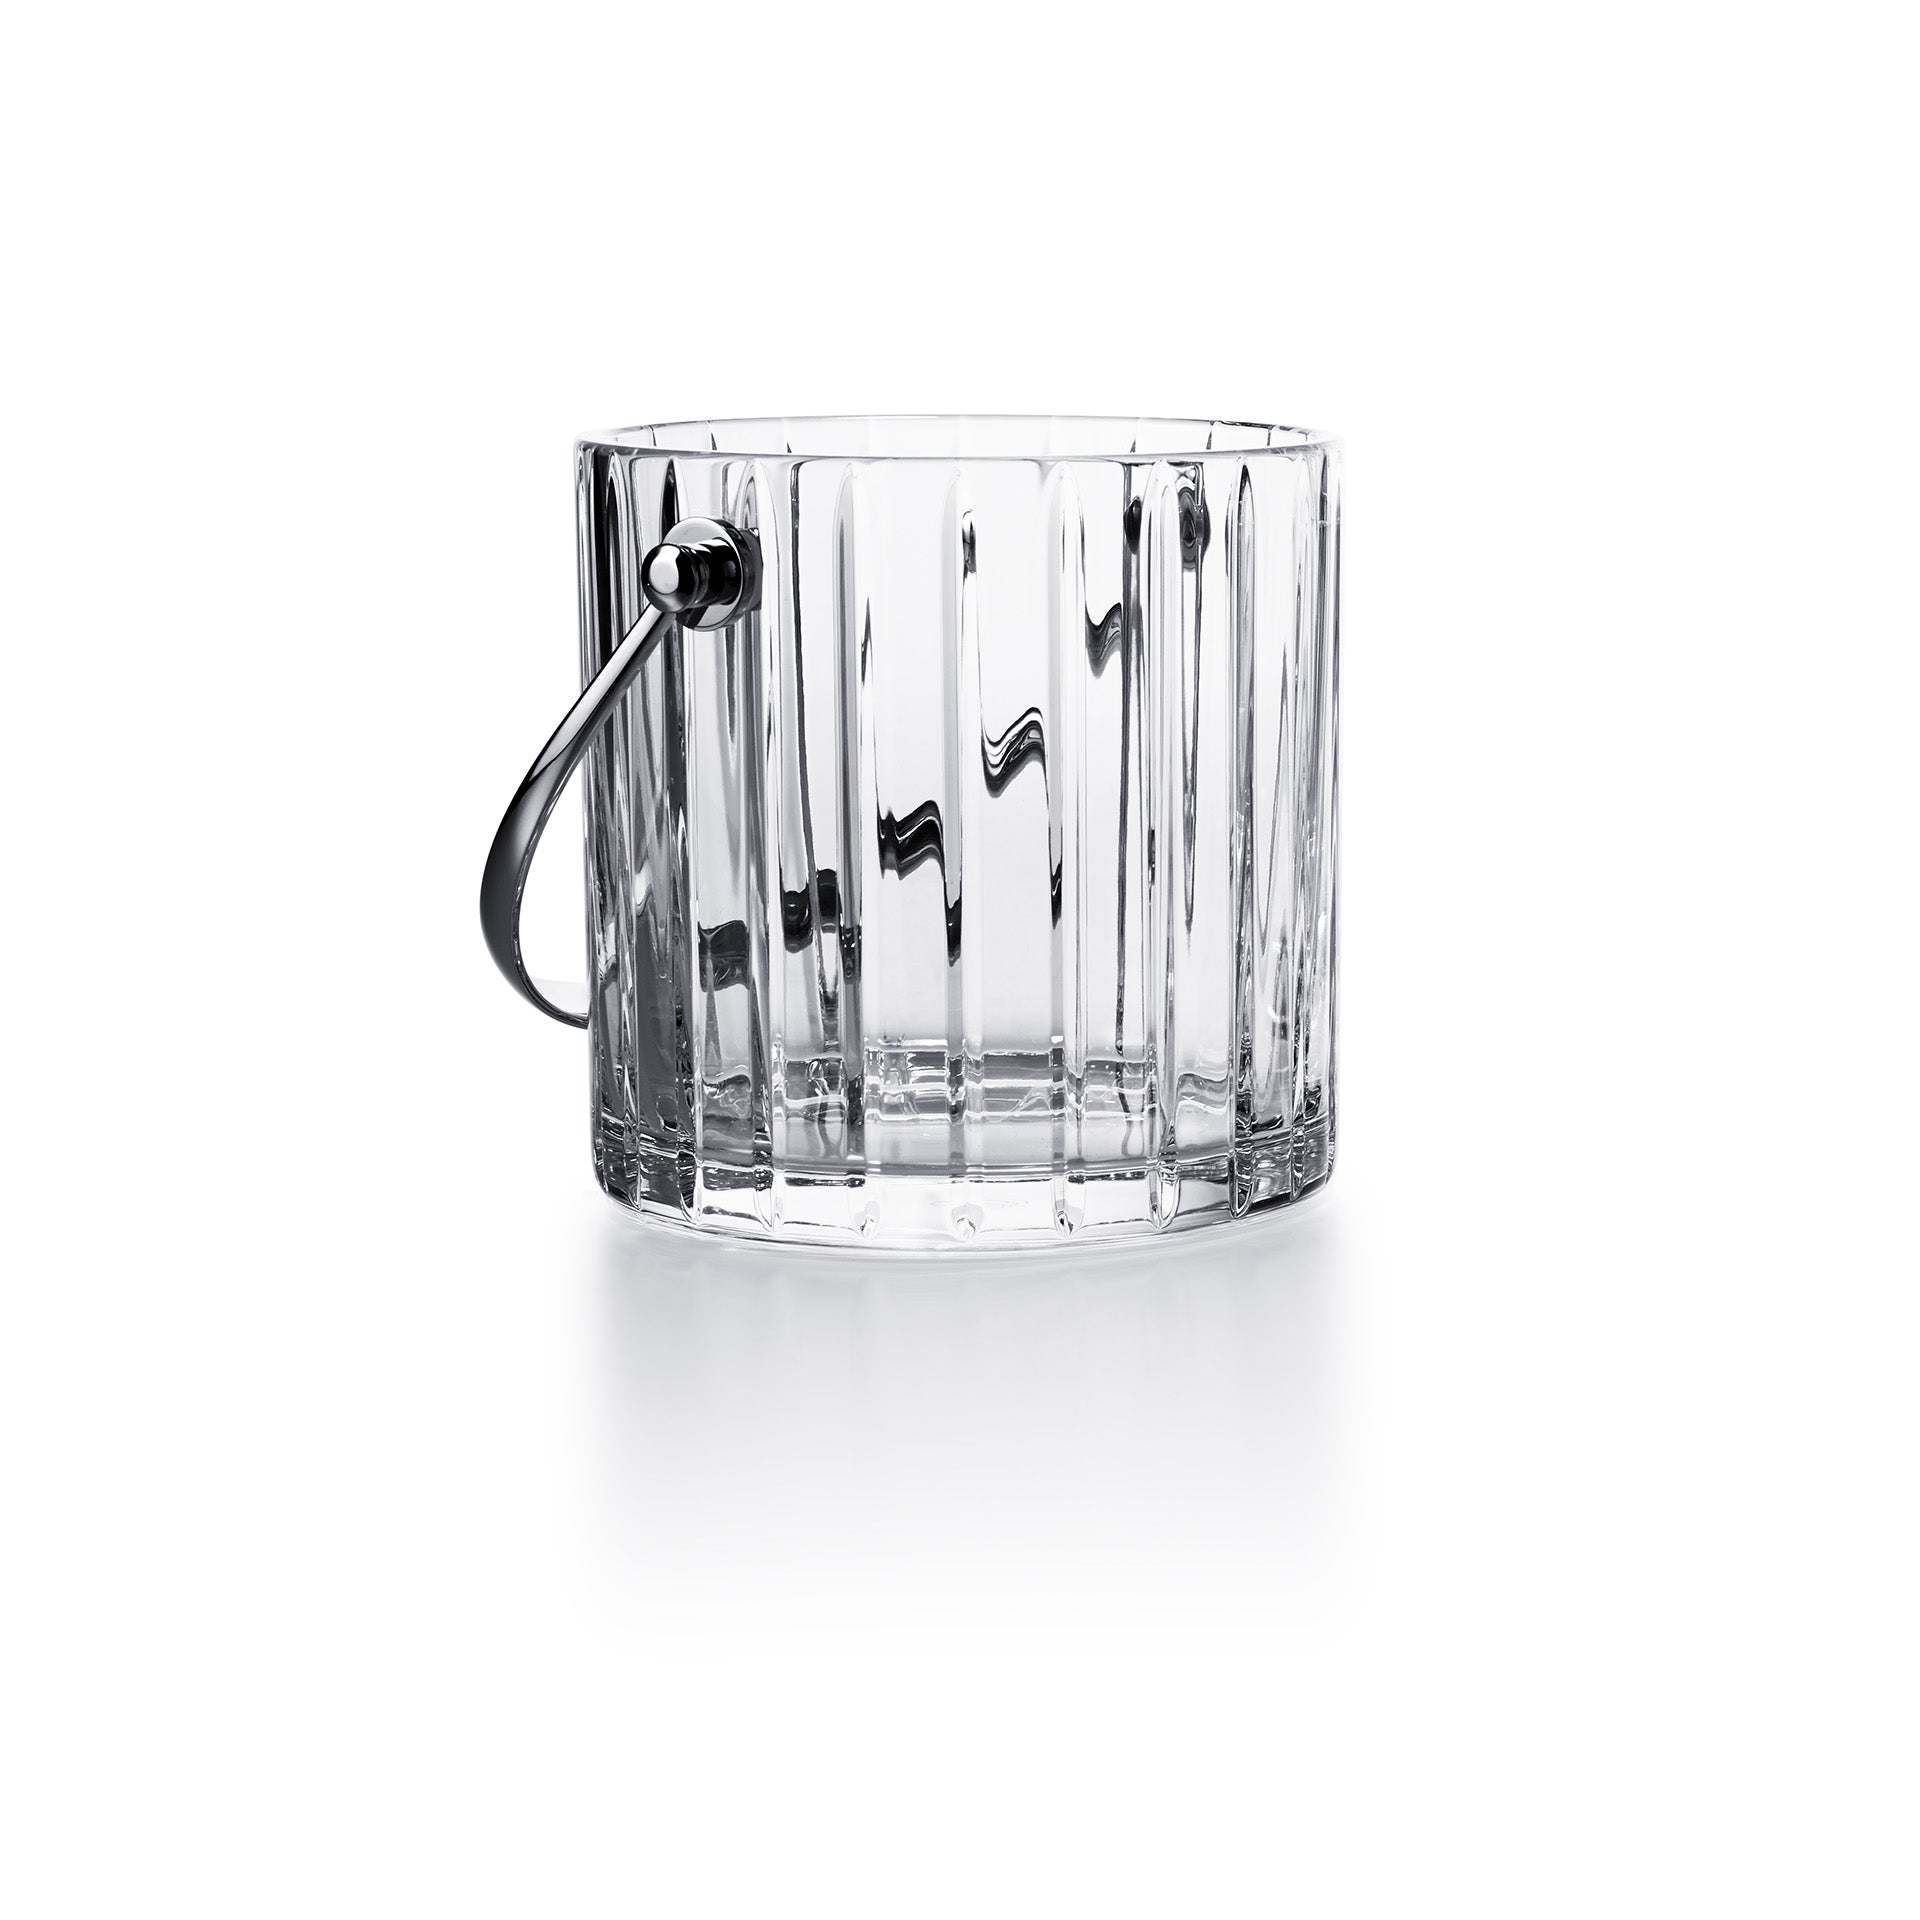 Baccarat - Crystal Harmonie Ice Bucket with Stainless Steel Handles